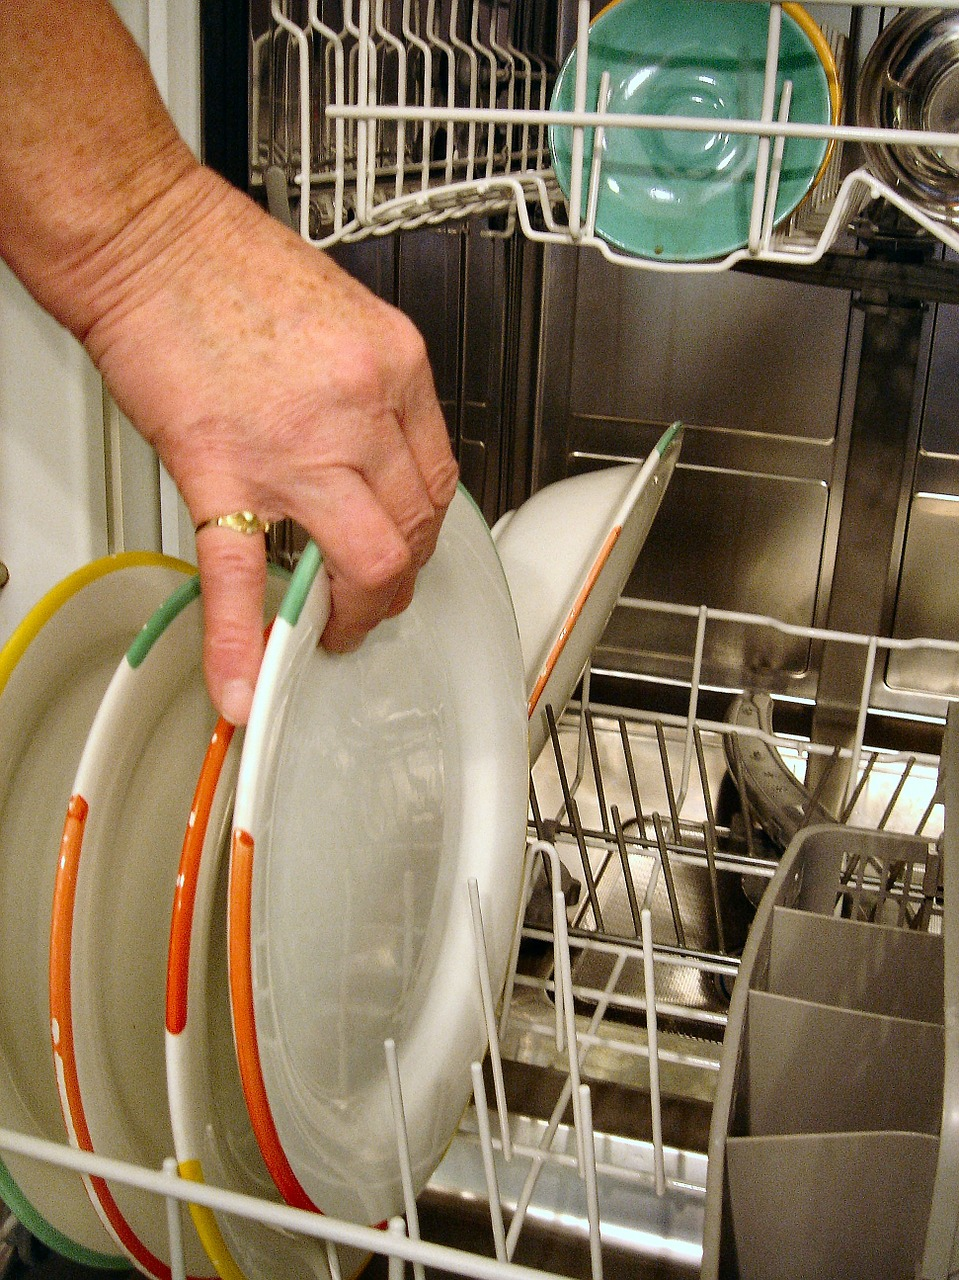 grant dishwasher tableware dishwasher free photo